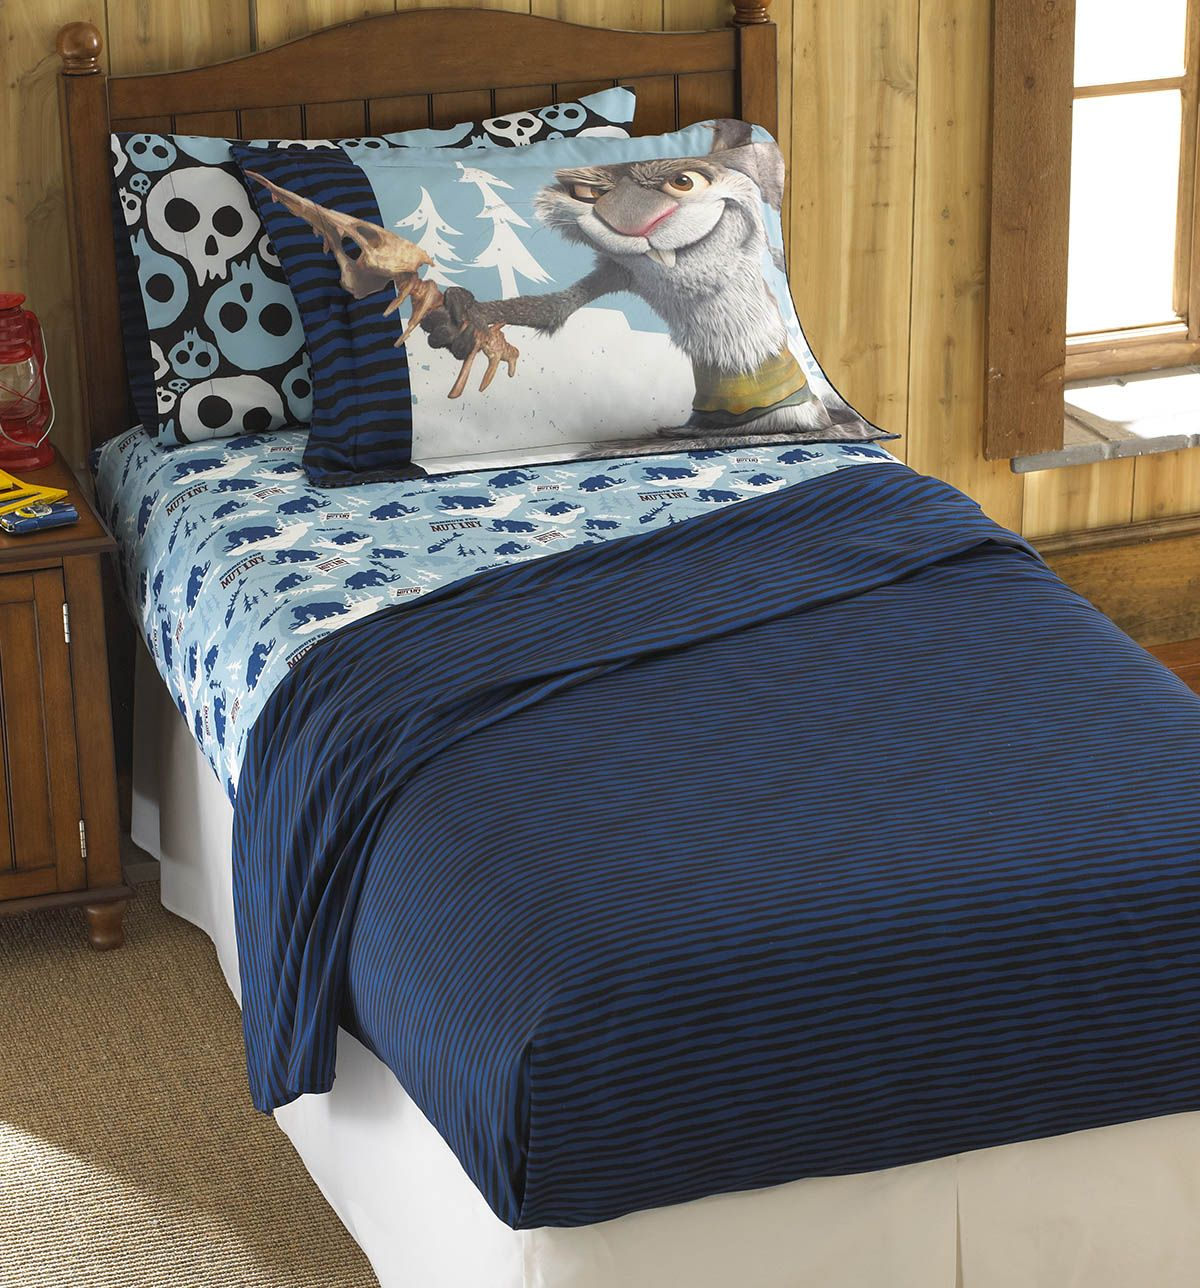 Ice Age Bed Sheets